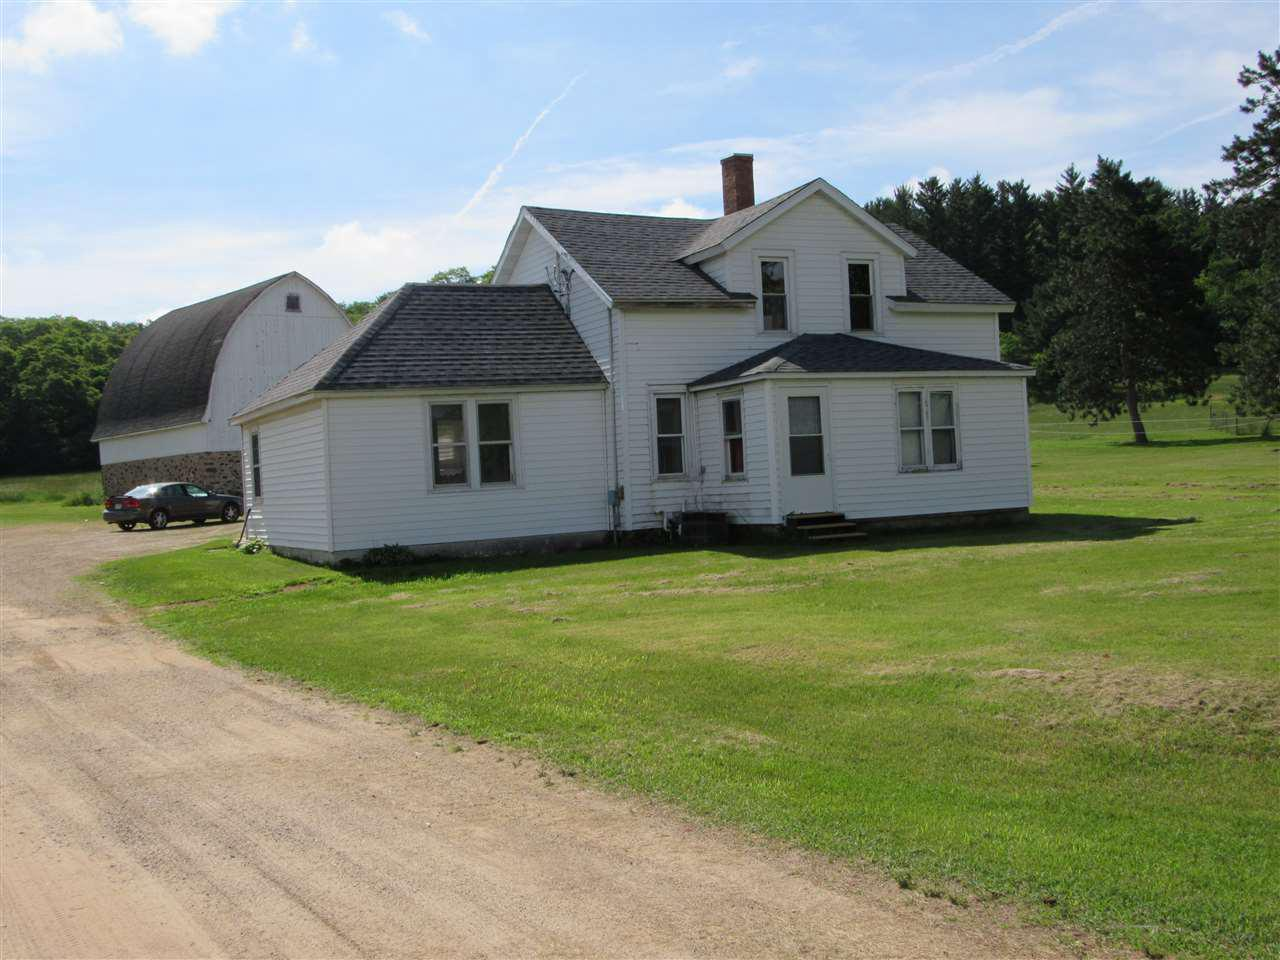 2 ACRE FARMETTE with multiple buildings just outside of Pardeeville. Old farmhouse with NEW well and upgrades to Electrical, Furnace, and Water Heater. Eat-in Kitchen with Dining Room plus Front and Rear Porches.  Cute 40 X 26 Barn , 2 Car 24x20 Garage, 46X40 Shop with 10X10 Roll-Up Door. Perfect opportunity for a business thru conditional use or rezone. Could also be a great place for the animals or support that special hobby. Many Other Miscellaneous Buildings. Tenant occupied.  More land may be available.  .